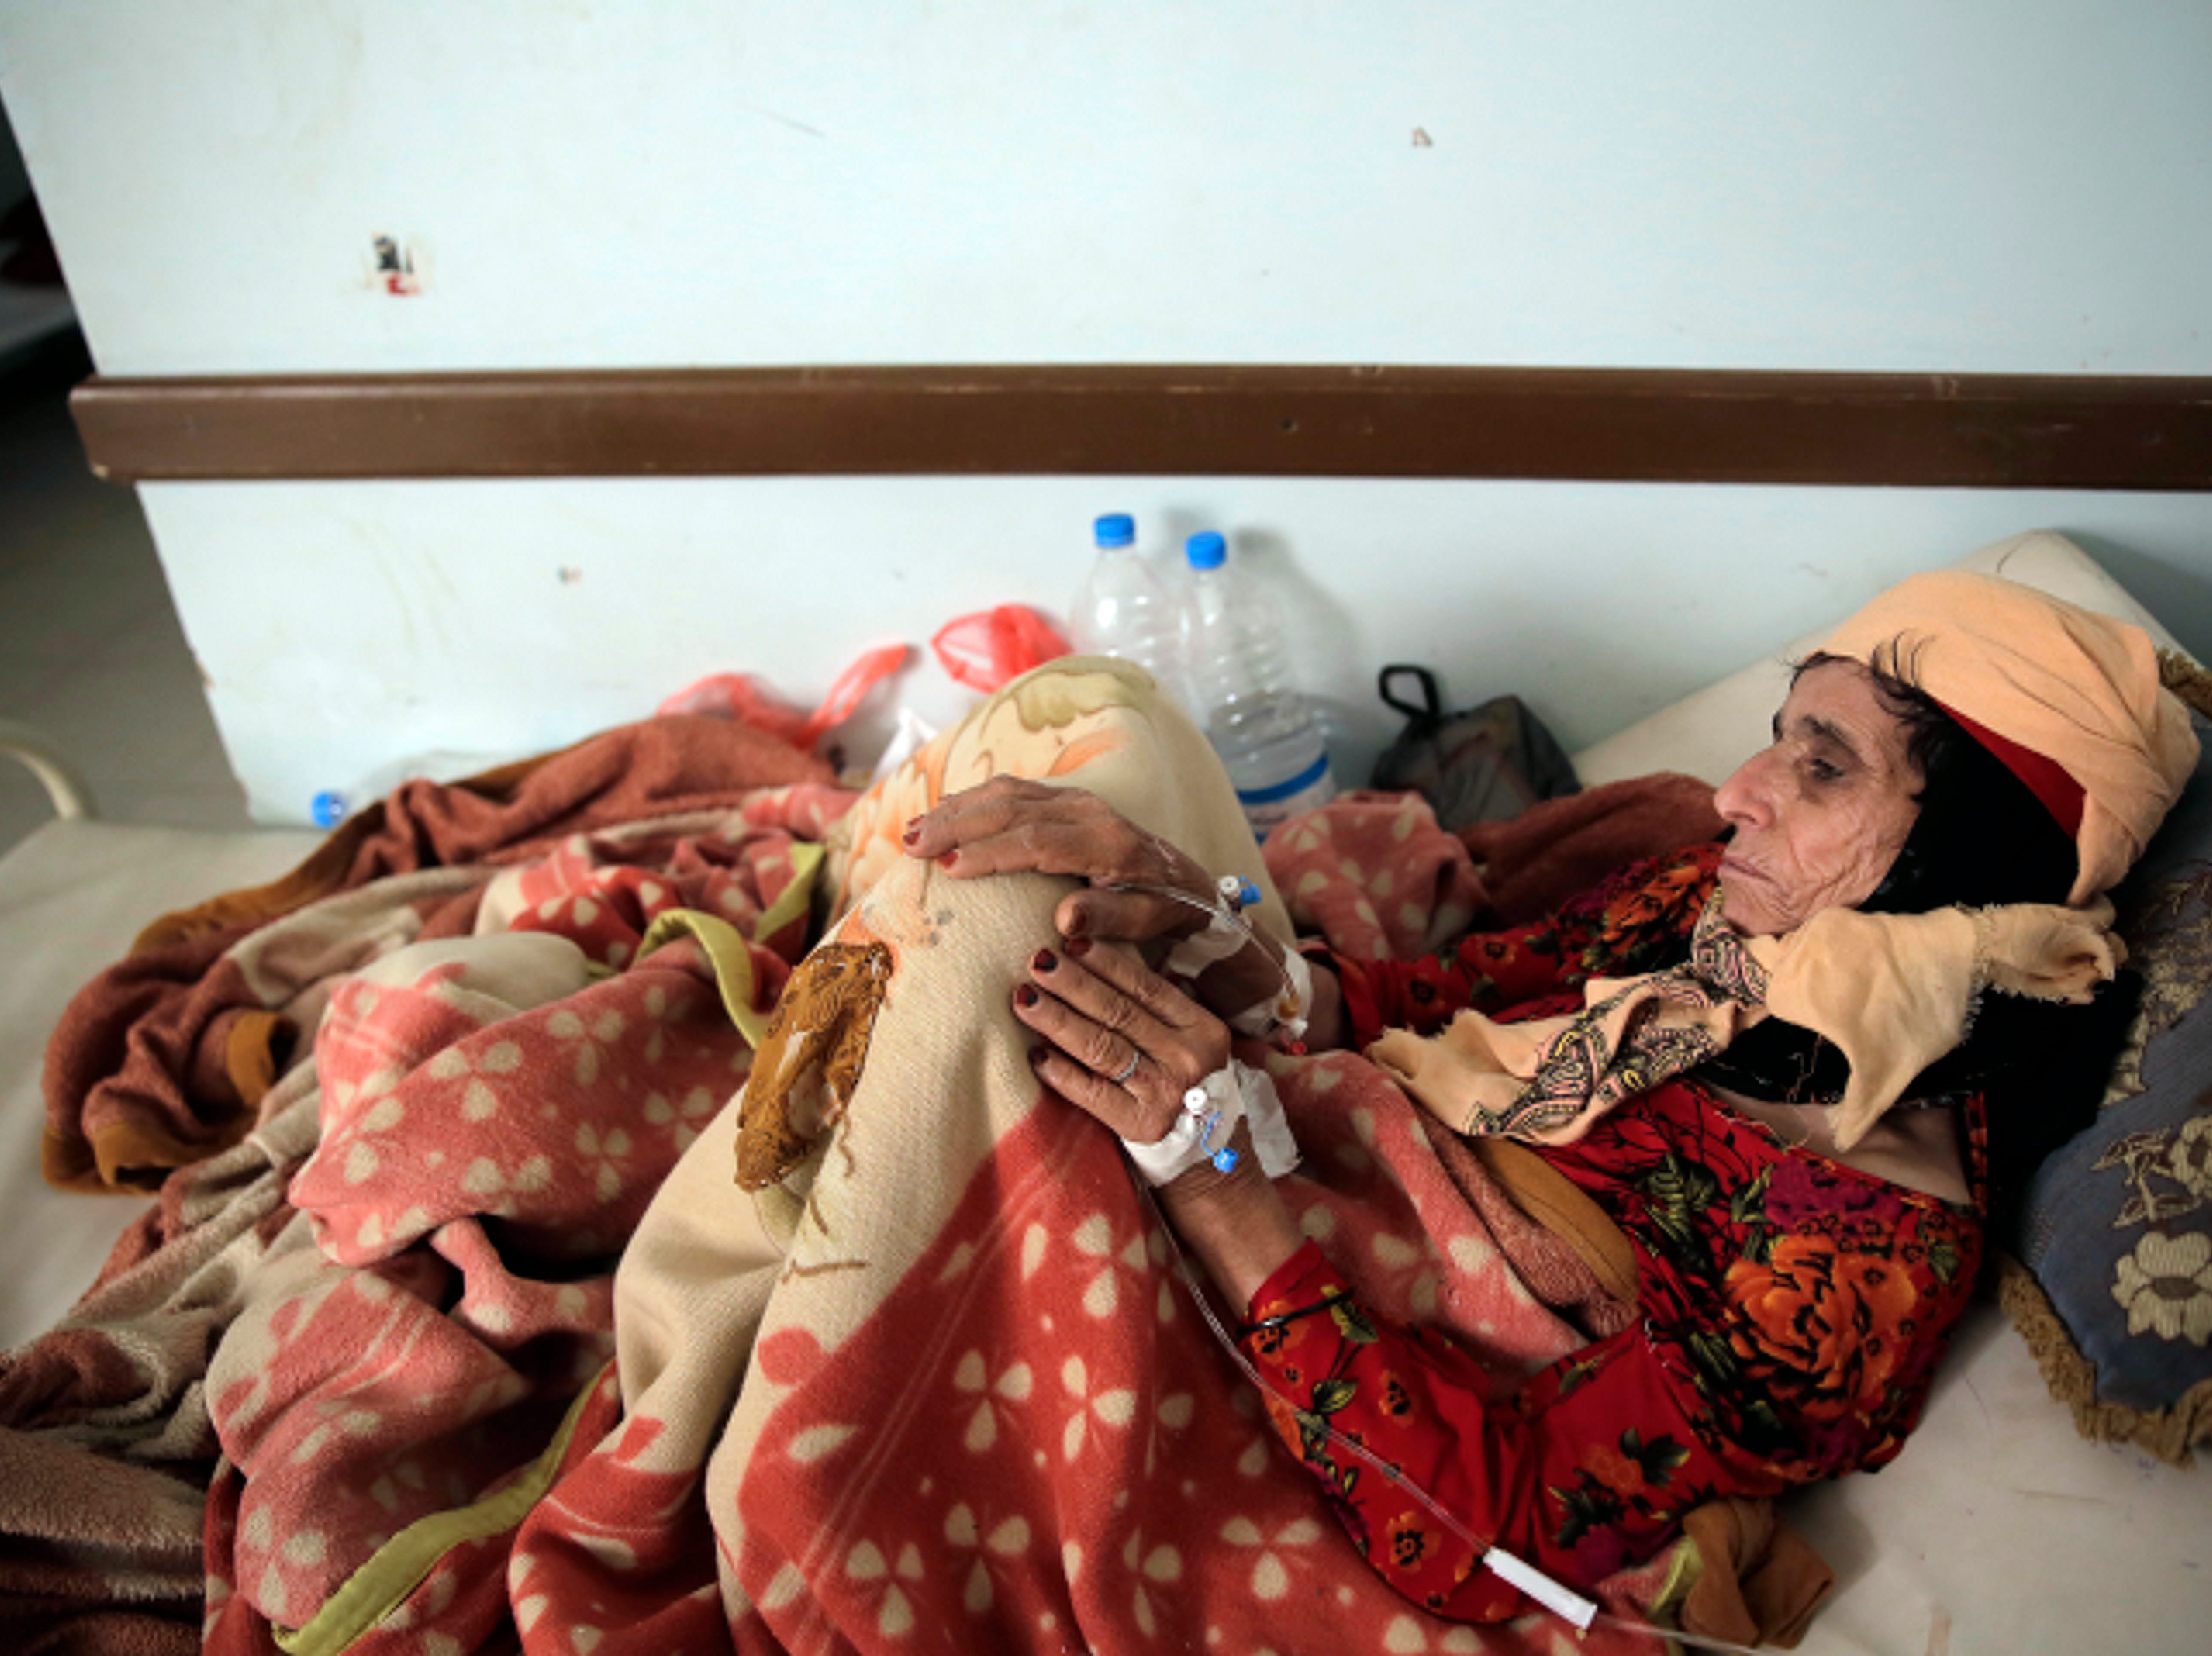 An elderly woman is treated for suspected cholera infection at a hospital in Sanaa, Yemen, Thursday, March 28, 2019. A United Nations humanitarian agency said on Monday that Yemen has witnessed a sharp spike in the number of suspected cholera cases this year, as well as increased displacement in a northern province.